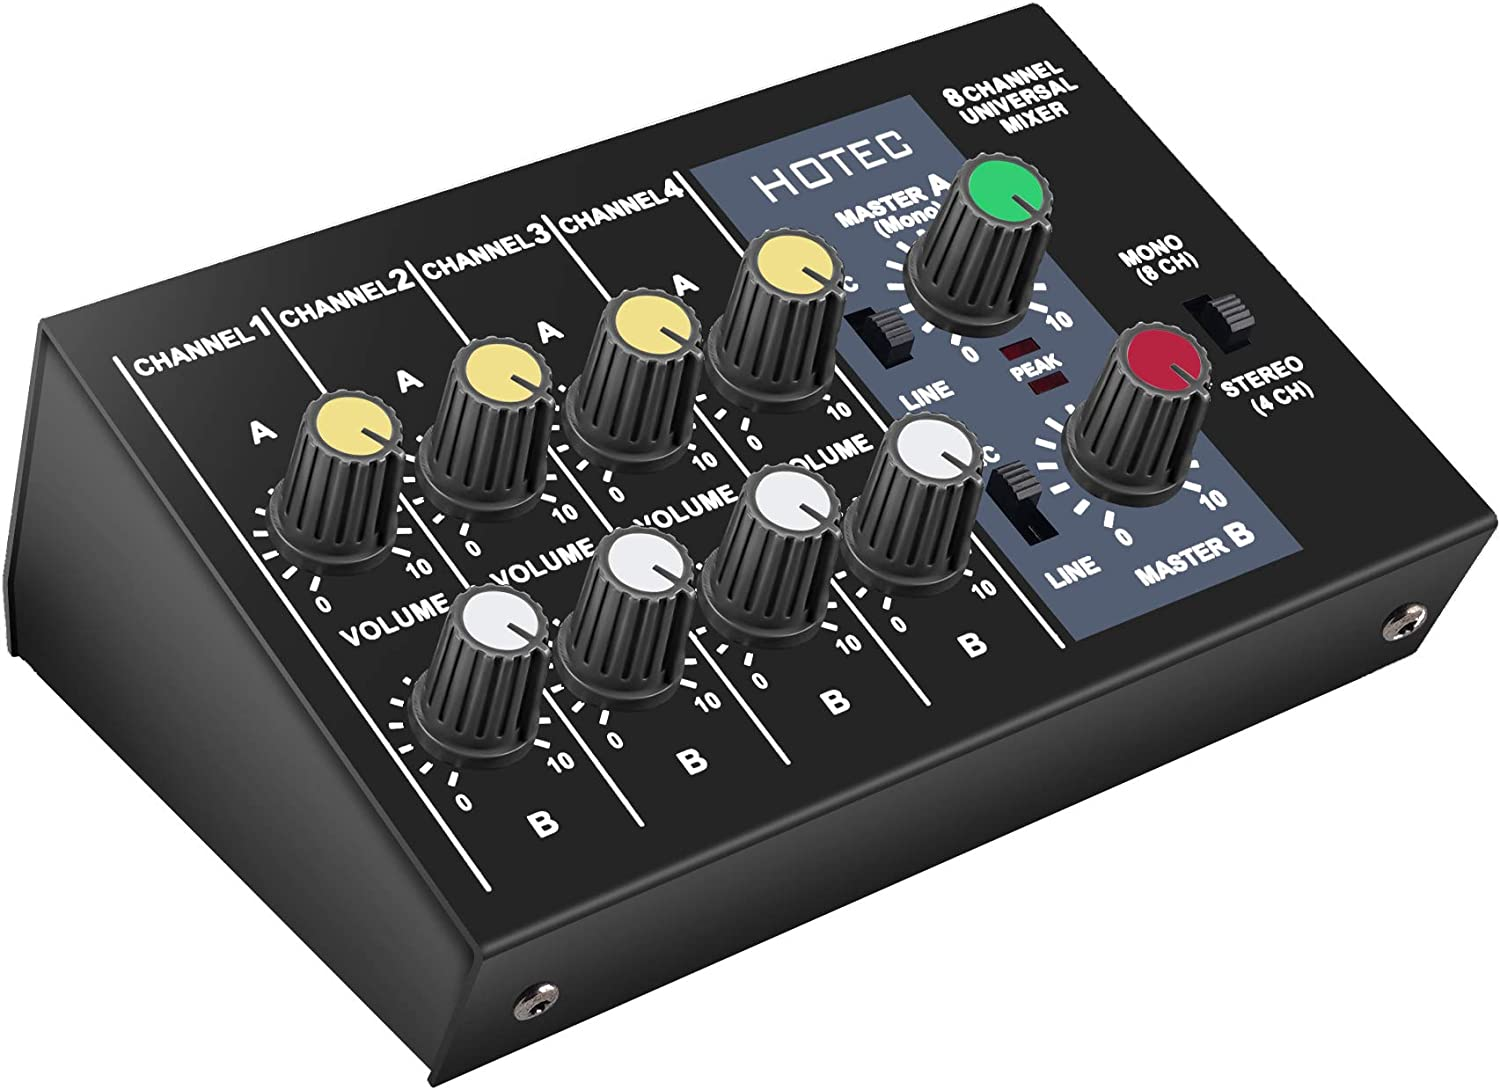 Hotec 8 Channels Audio Mixer, Mono Stereo Sound Mixer for Club, Bar, Recording, DJ, Stage, Karaoke Microphones, Guitars, Bass, Keyboards